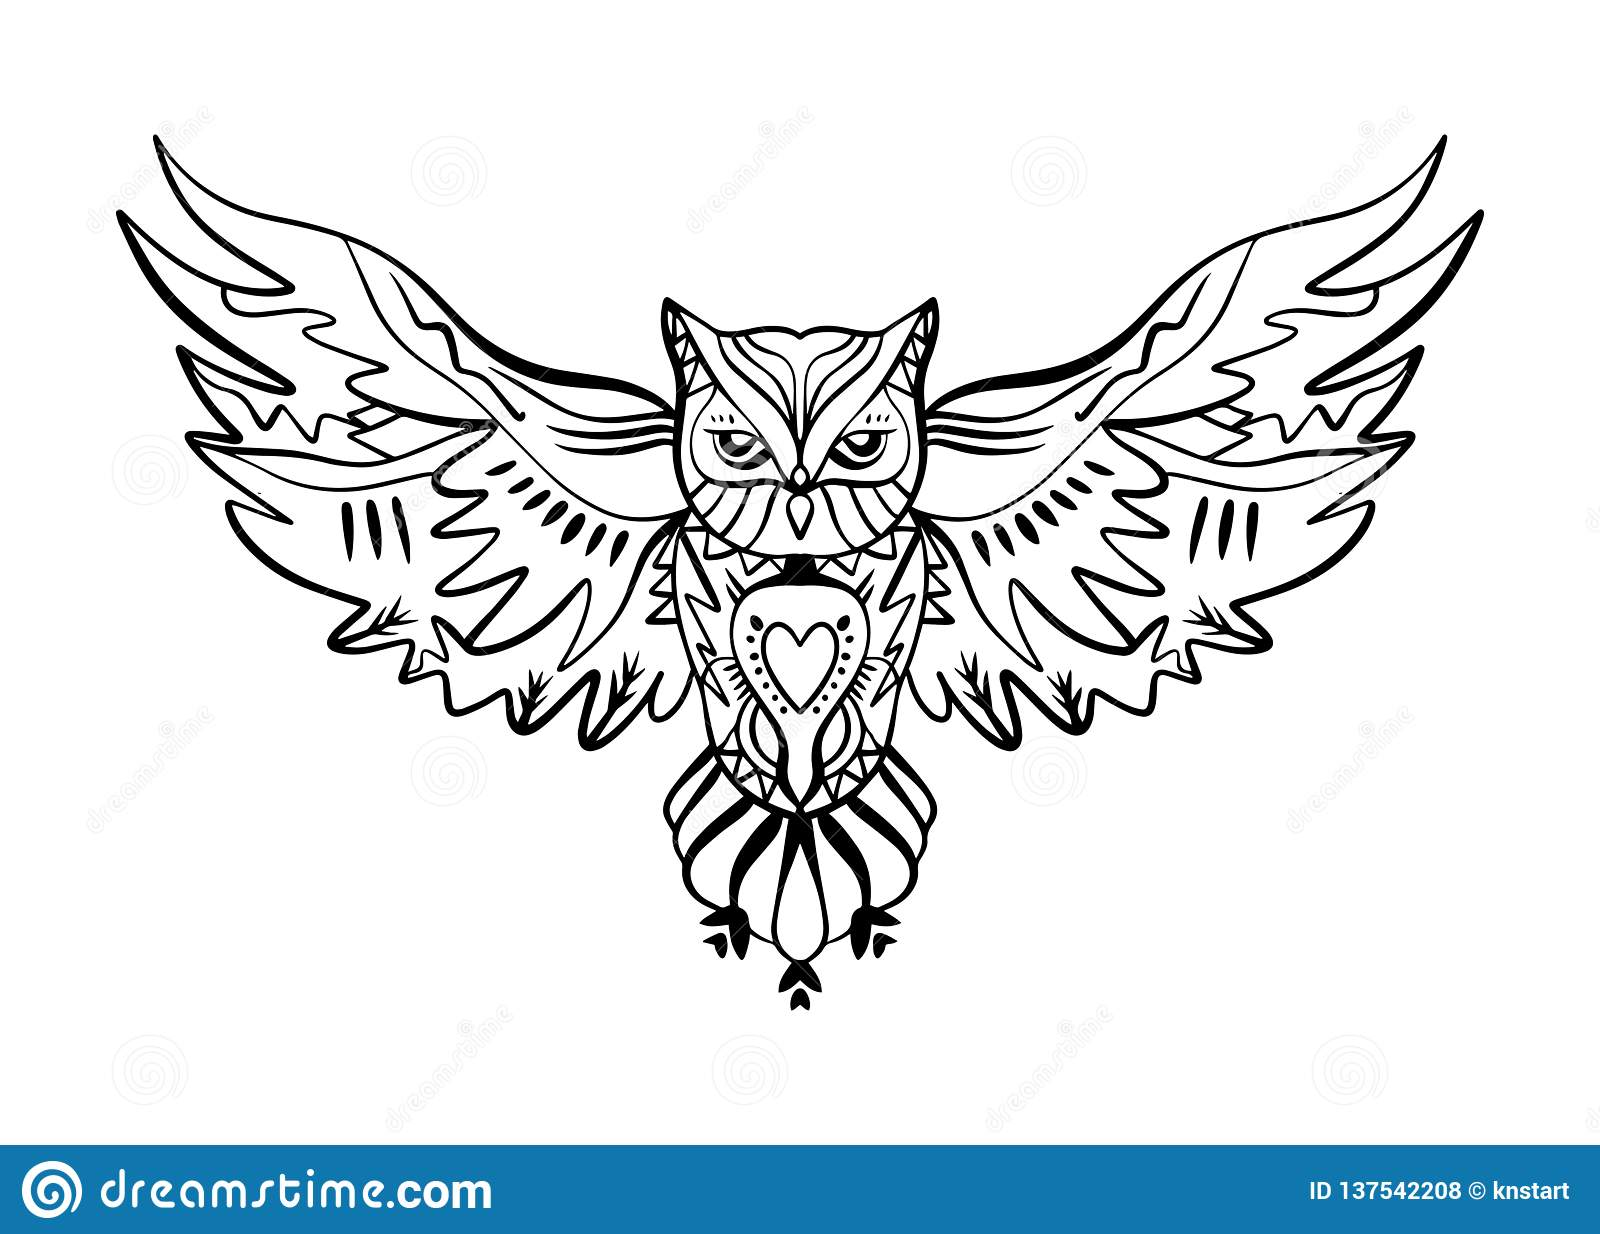 Owl Tattoo Outline Boho Tribal Style Line Ethnic Ornaments Poster